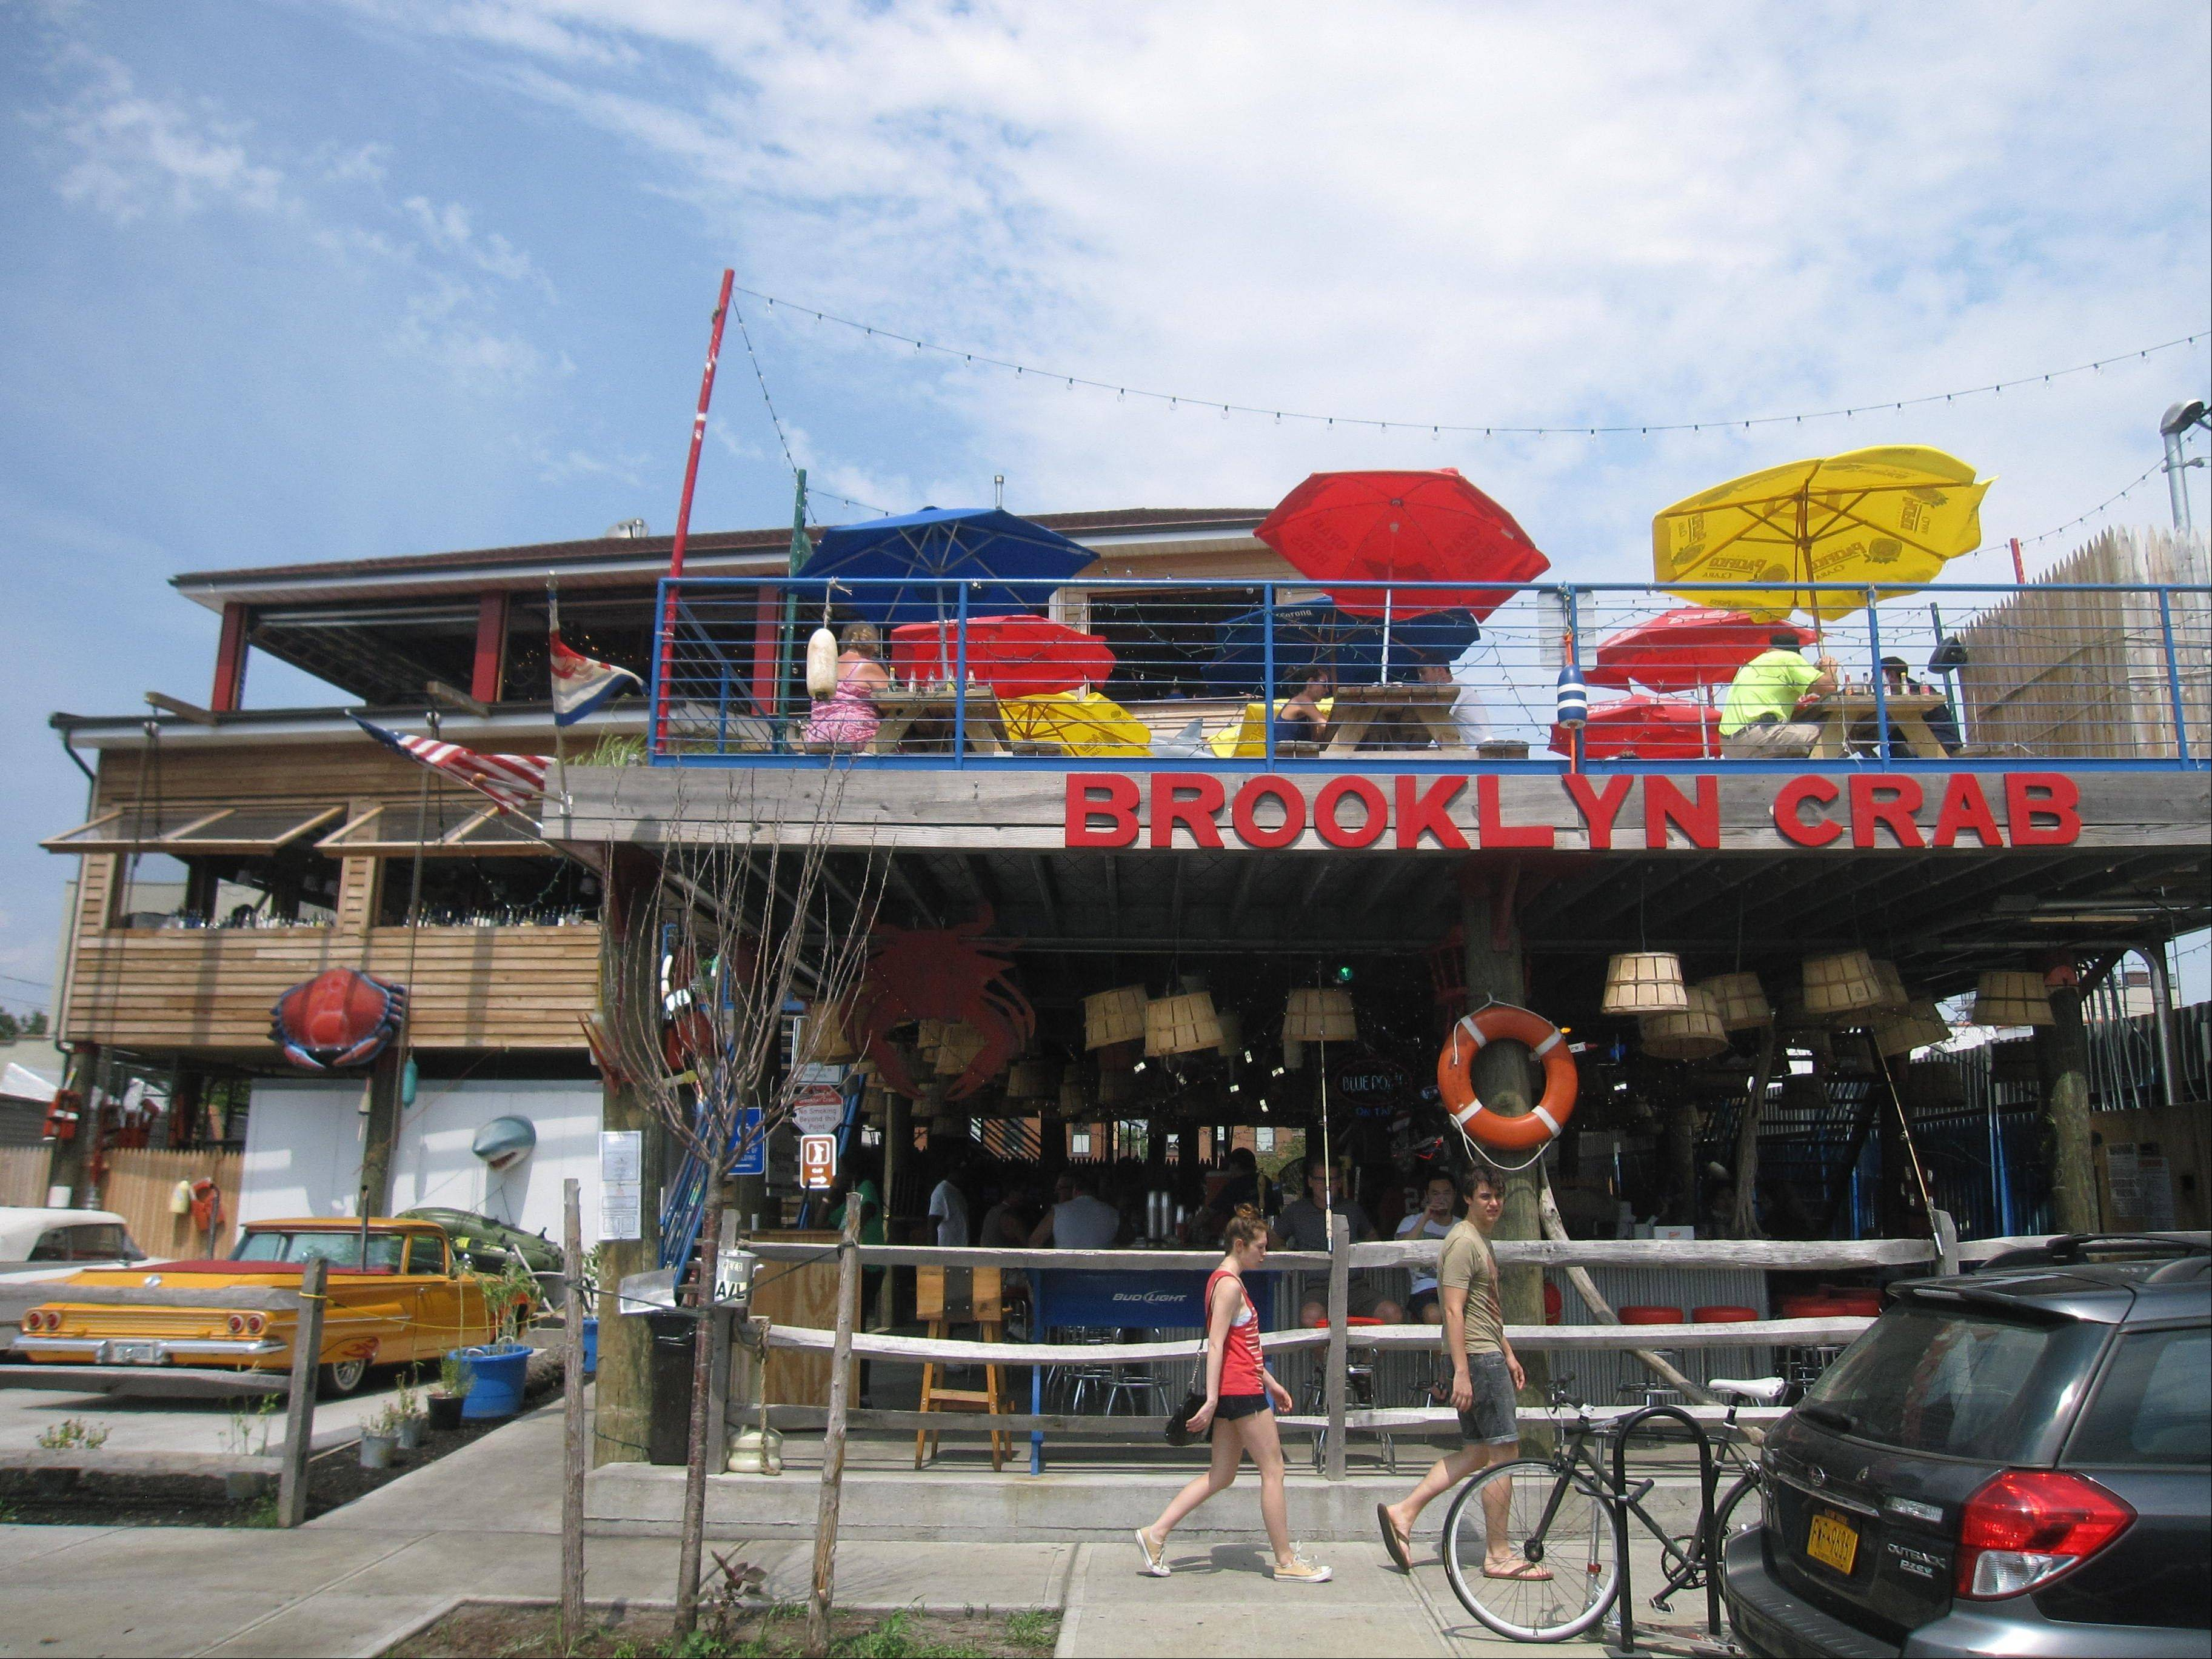 Brooklyn Crab in Red Hook is located across from old brick warehouses that now house a supermarket in New York City.